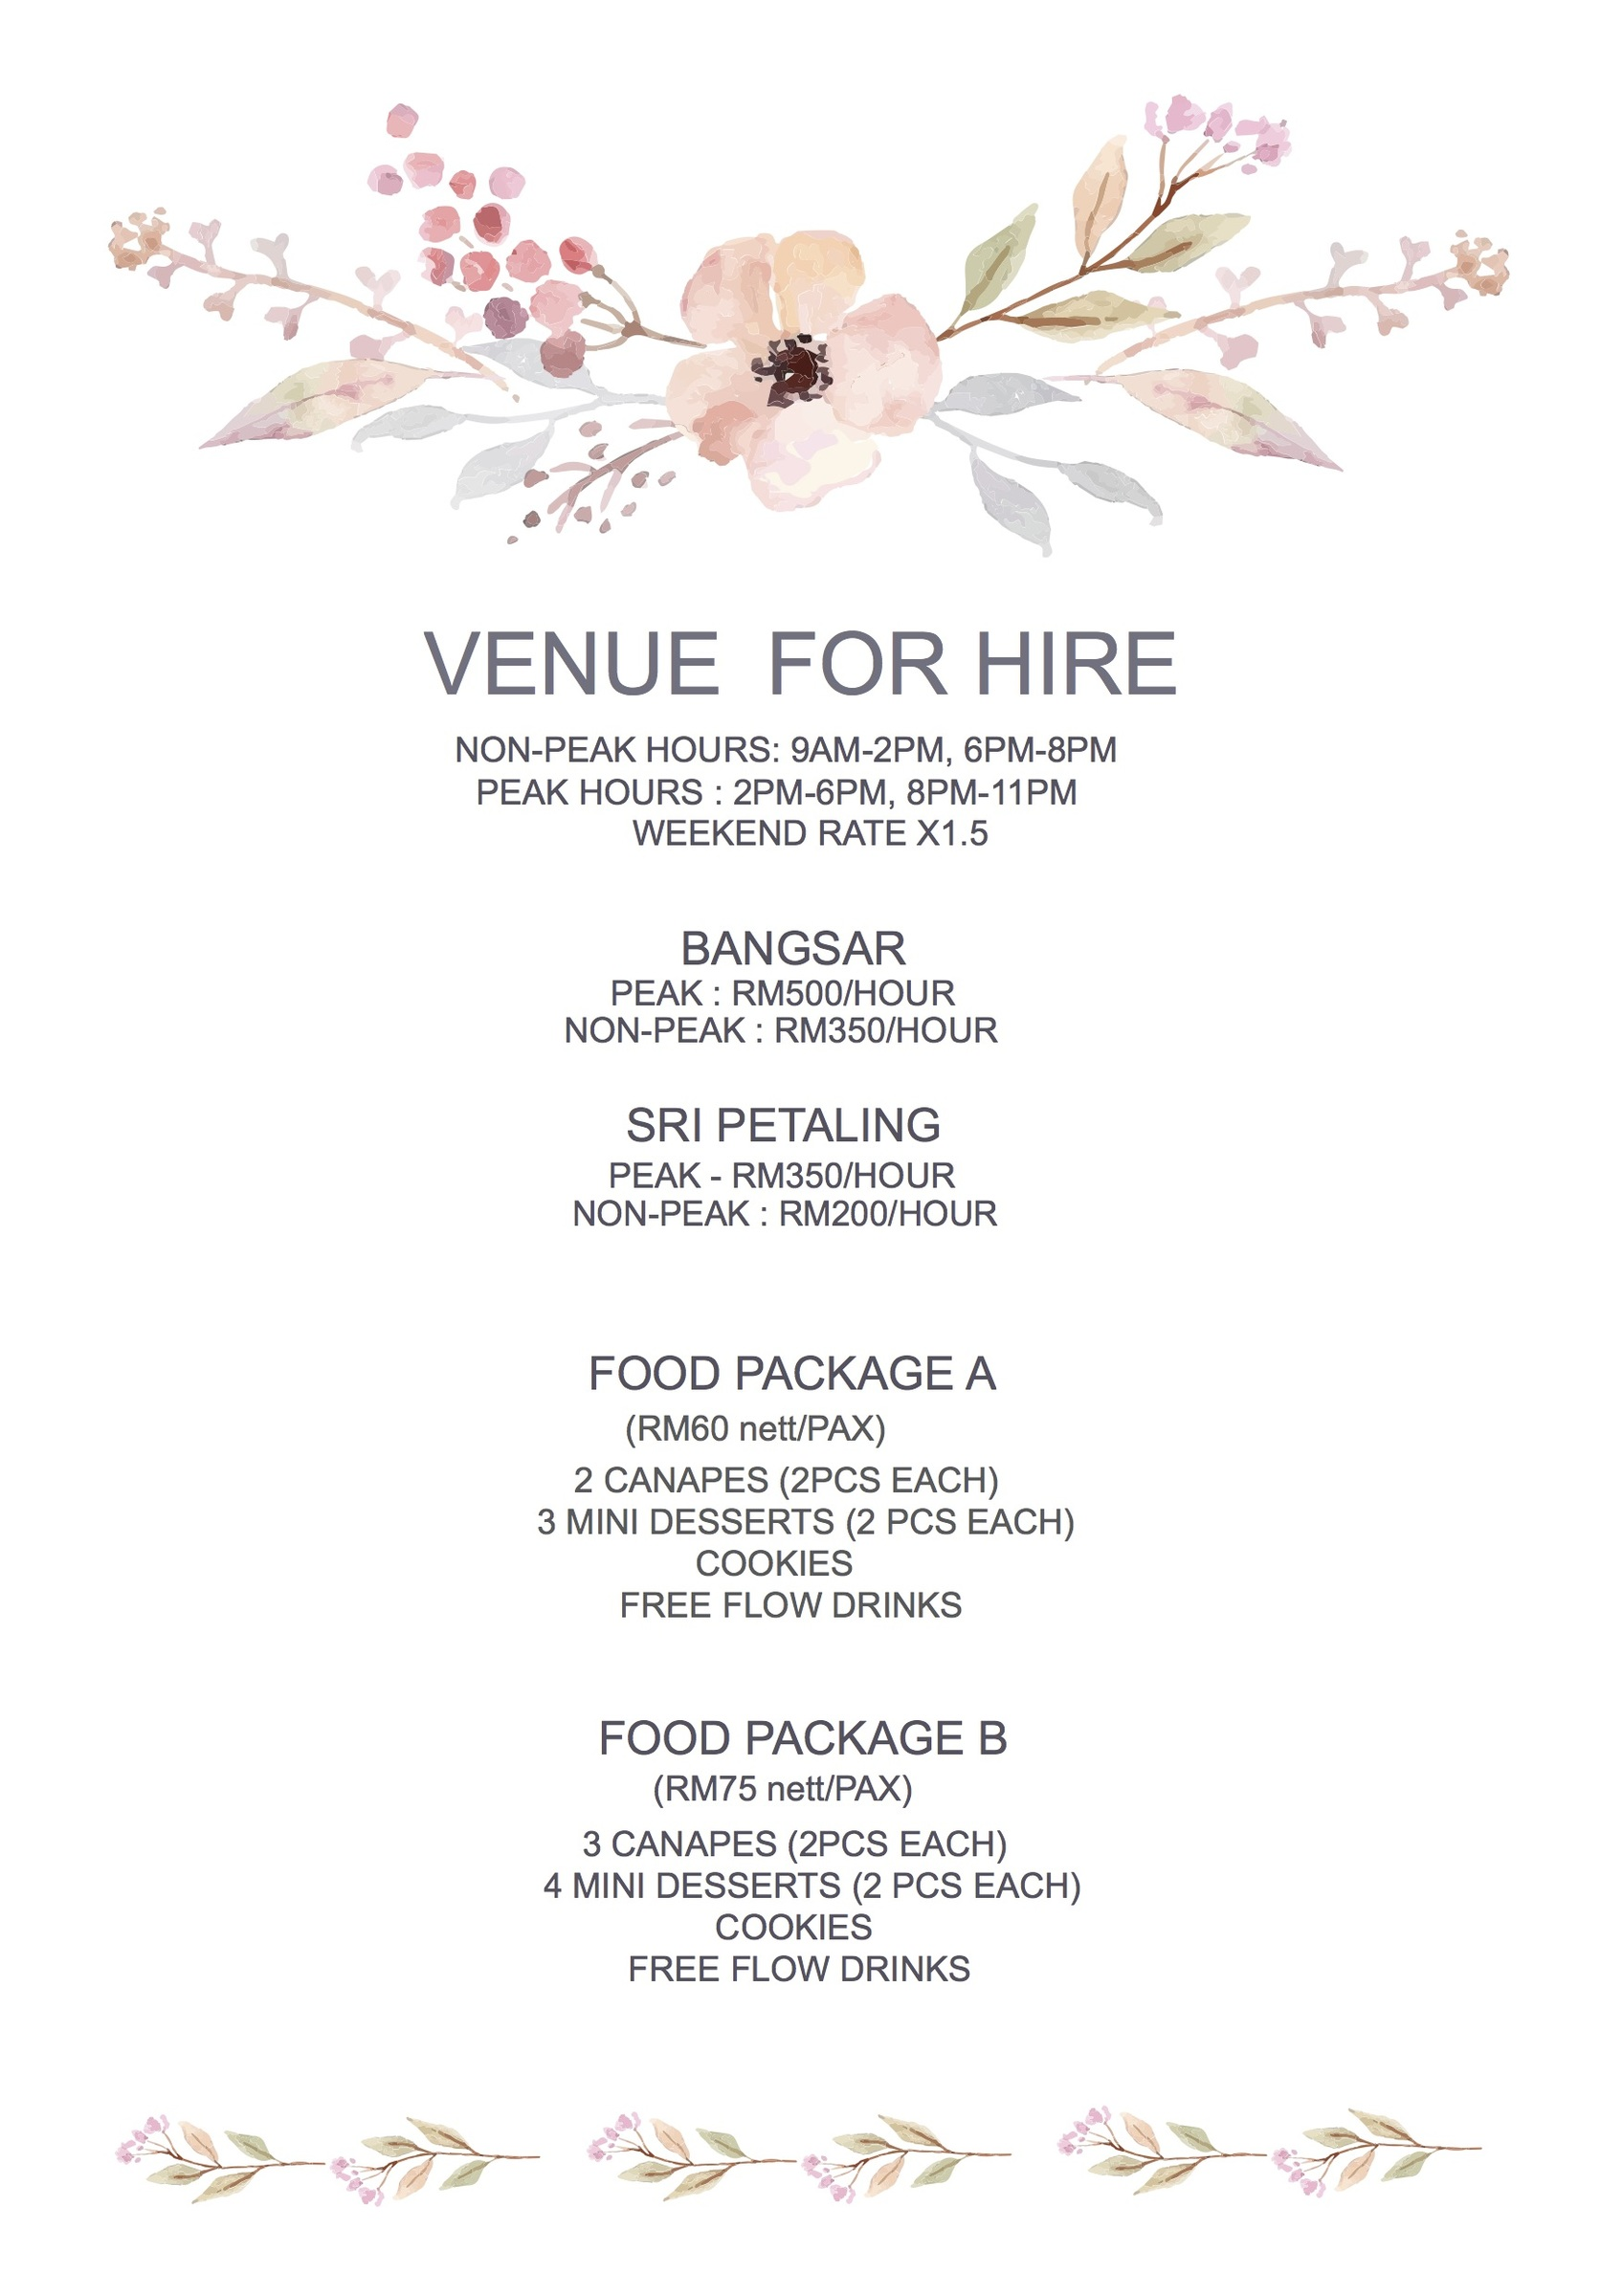 VENUE FOR HIRE TT UPDATED .jpg